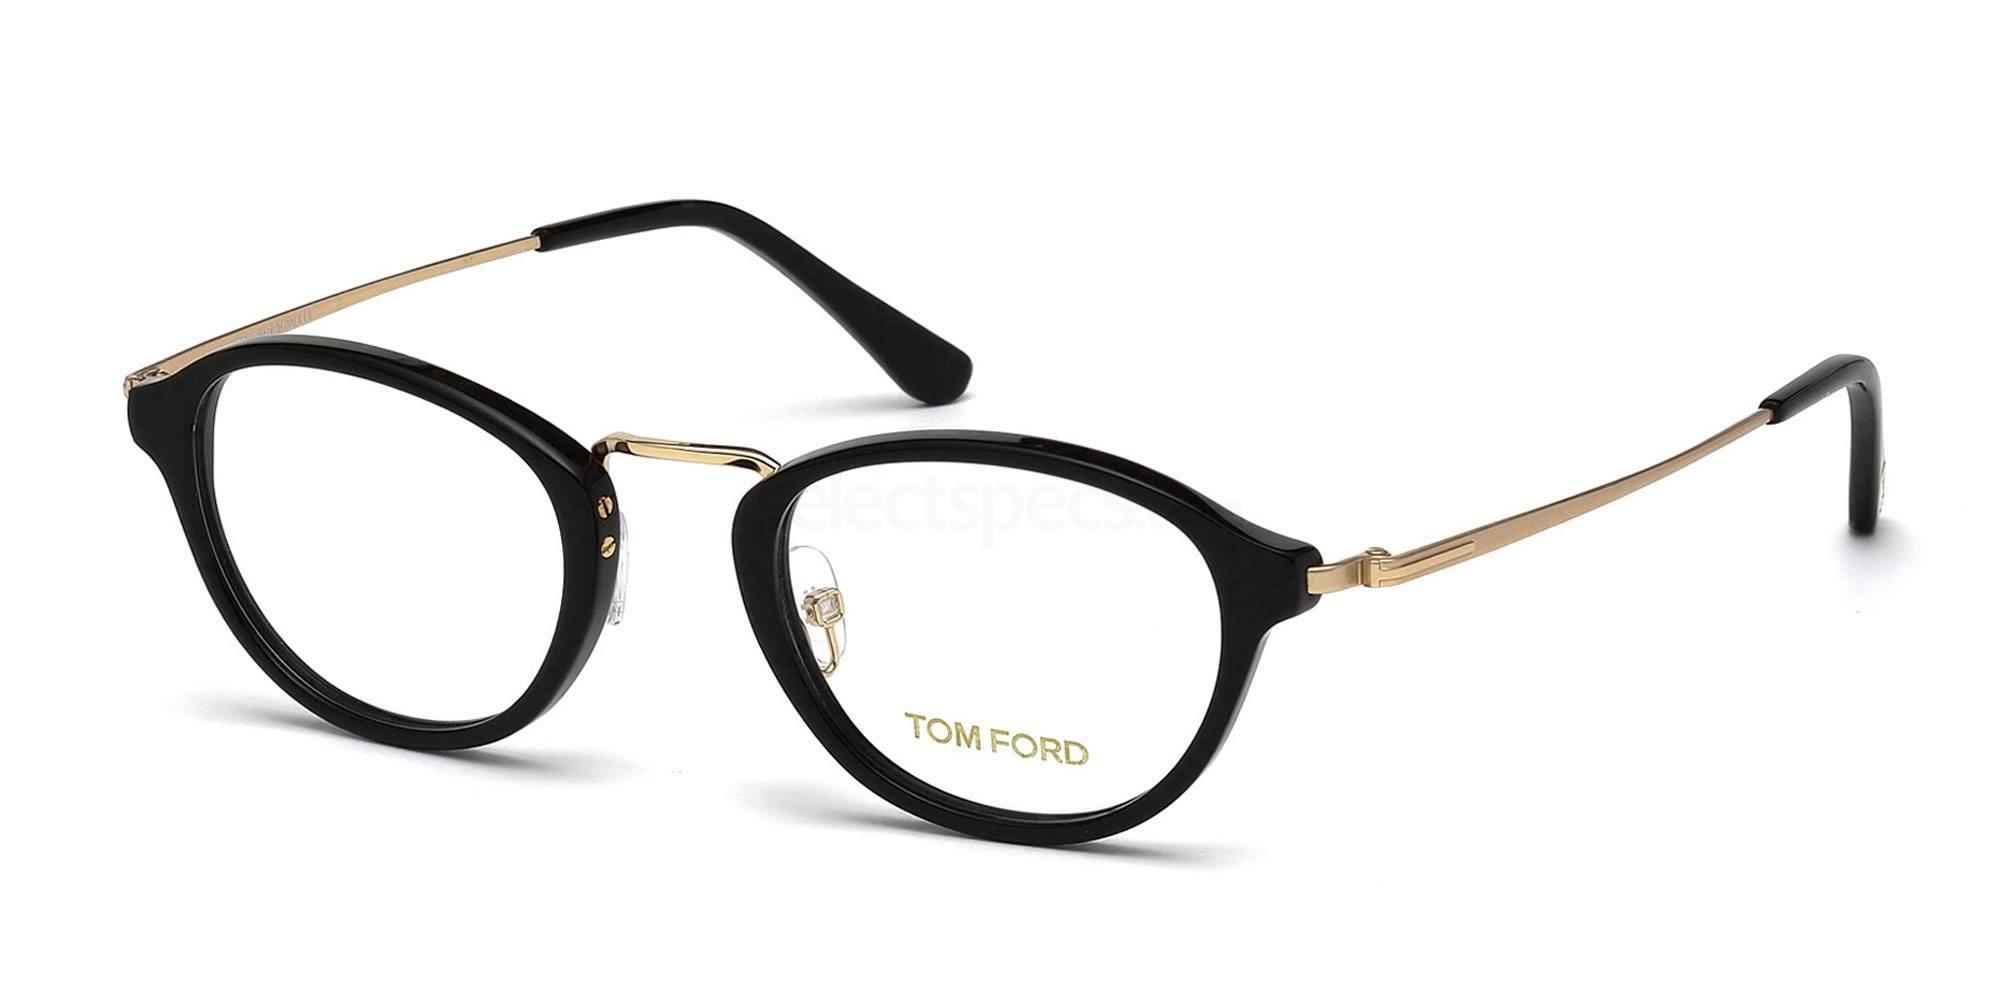 Tom Ford Black & Gold Glasses at SelectSpecs